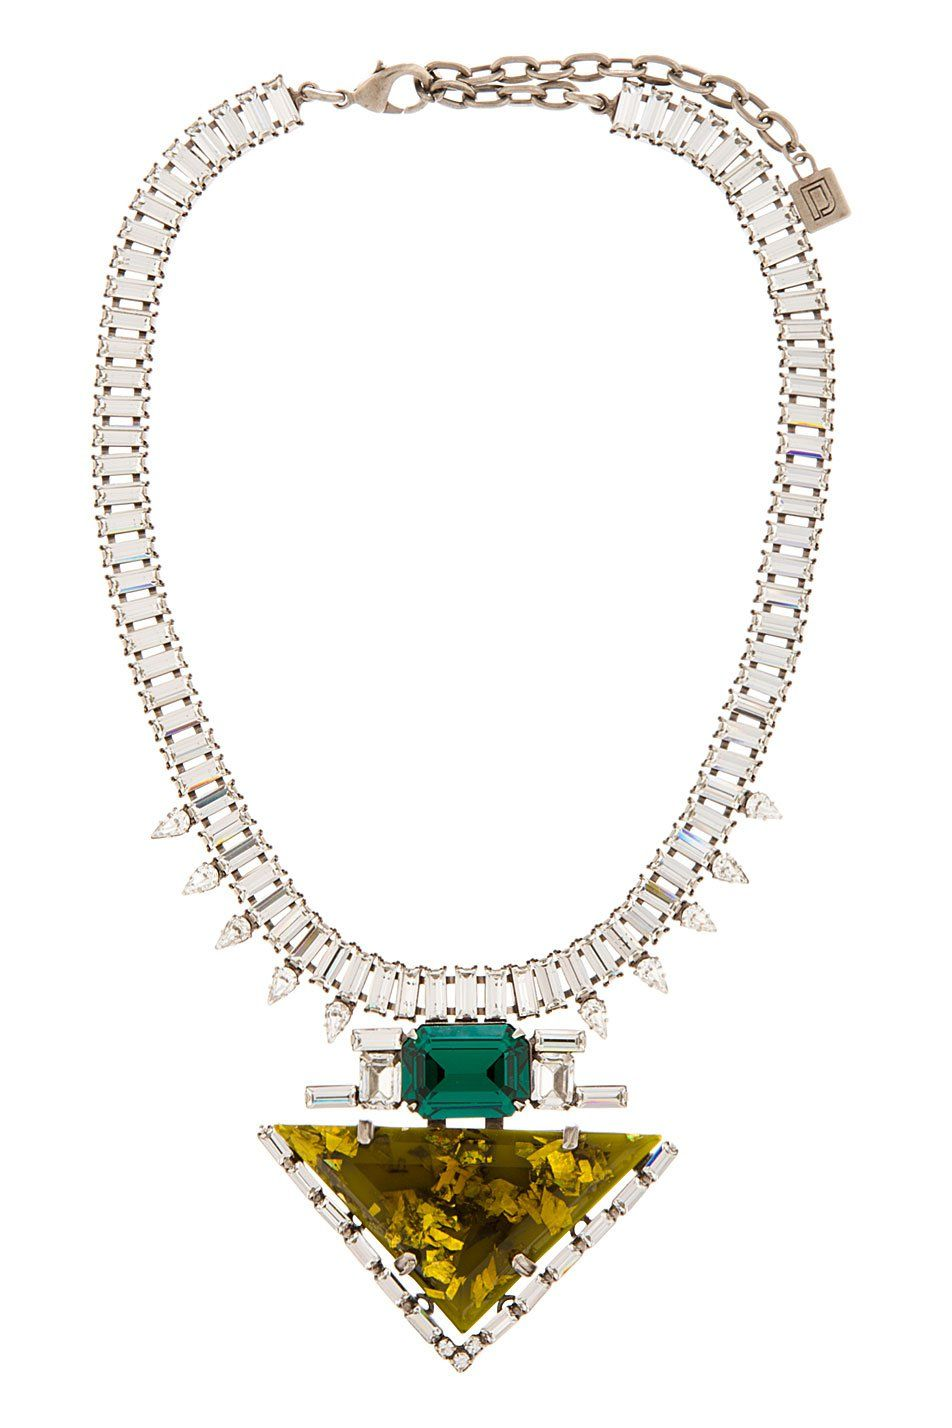 Dannijo Chartreuse Resin And Crystal Elodie Necklace - on Vein - getvein.com